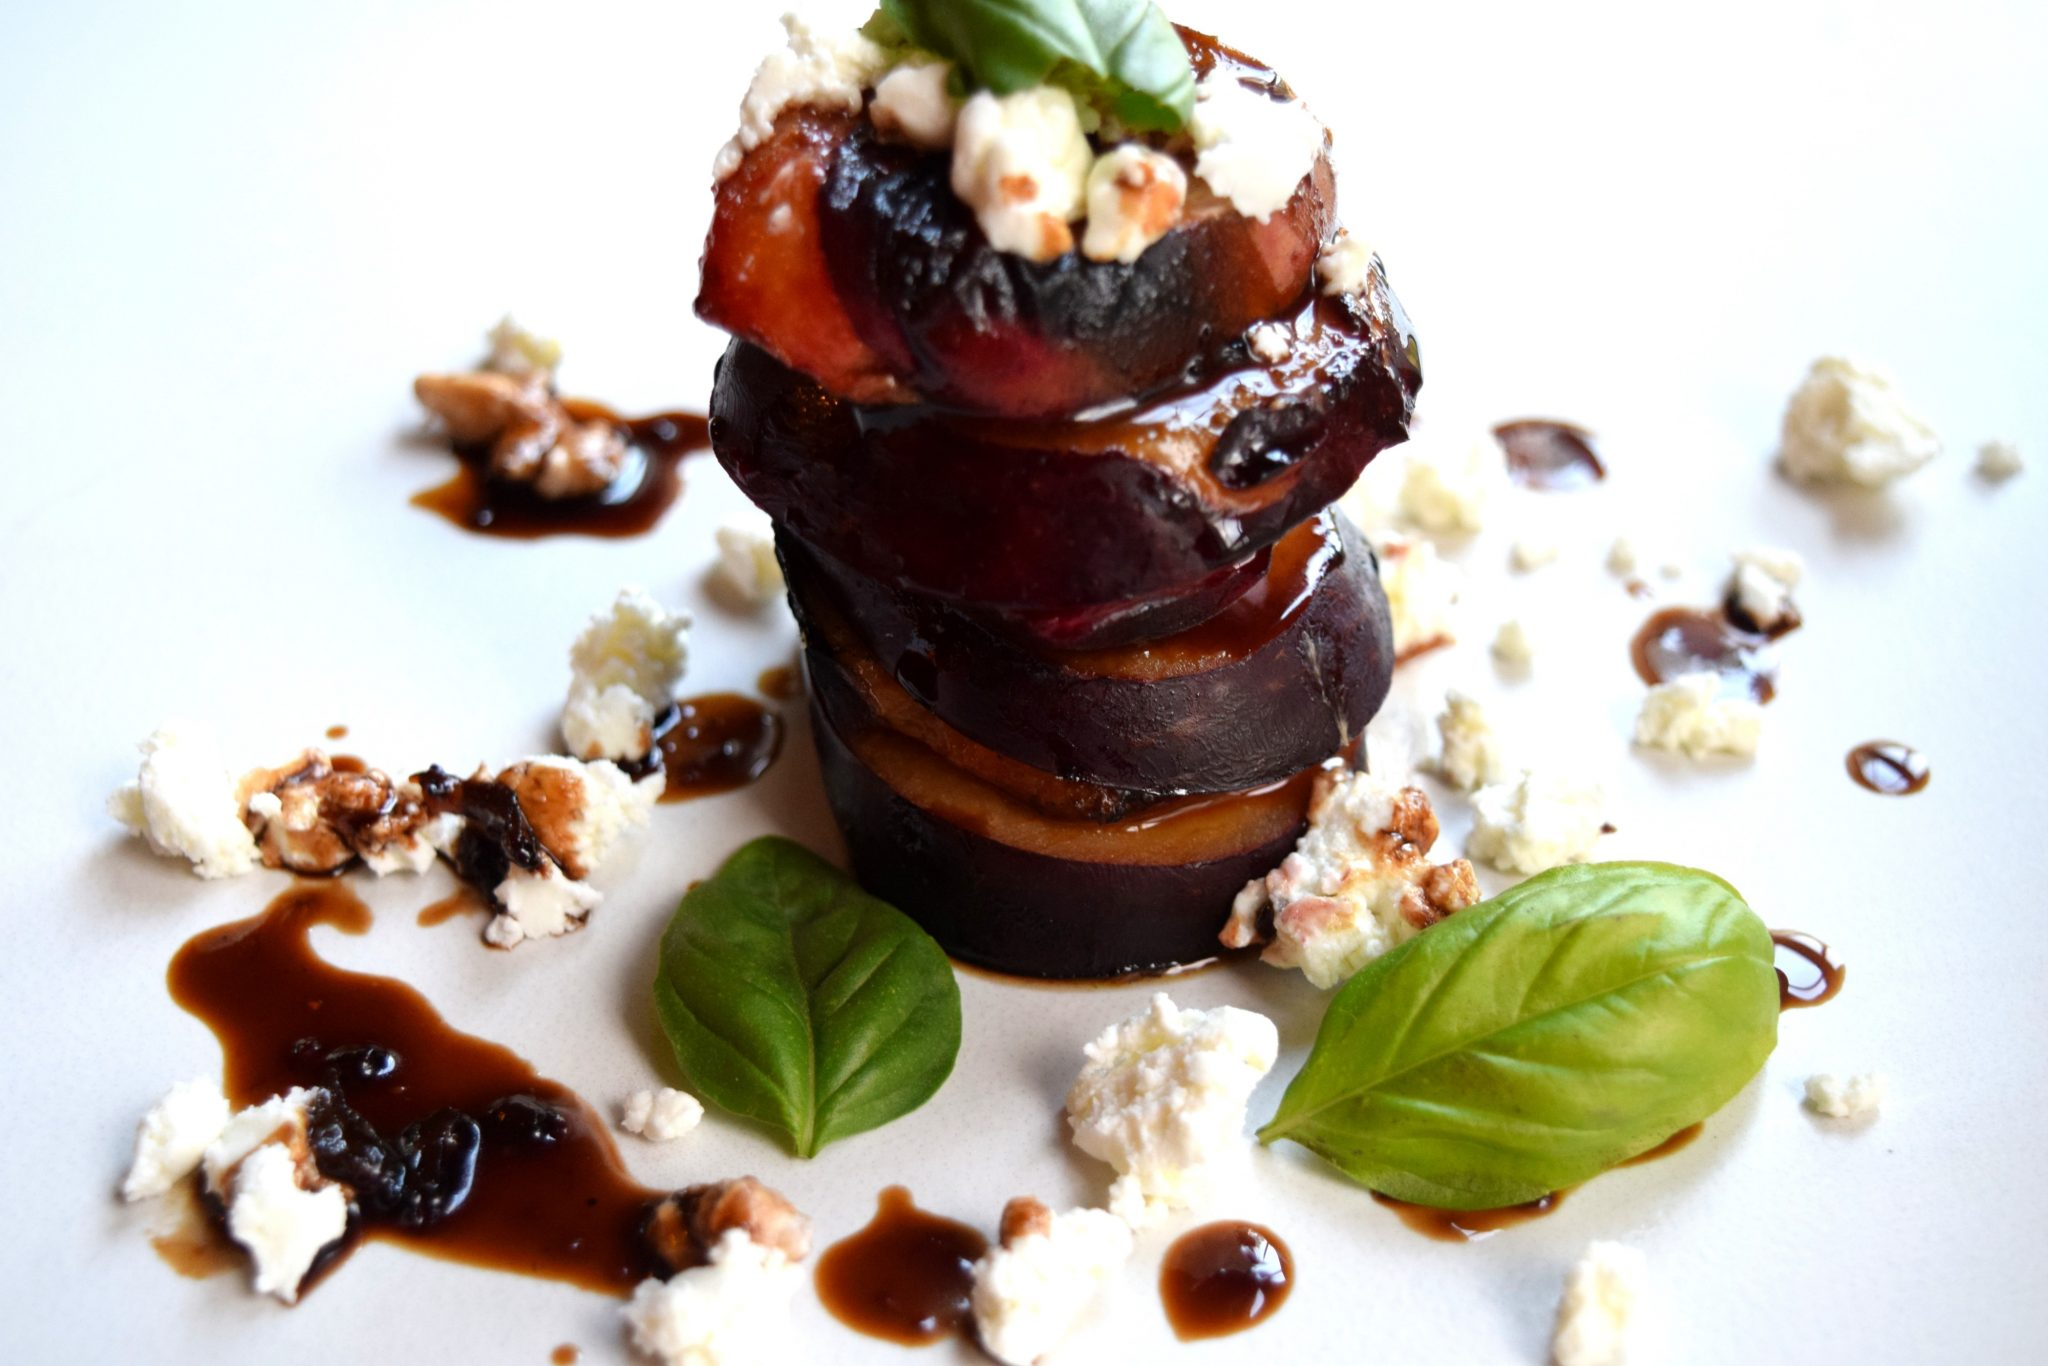 Grilled Plum and Peach Stack with Goat Cheese and Balsamic Fig Reduction